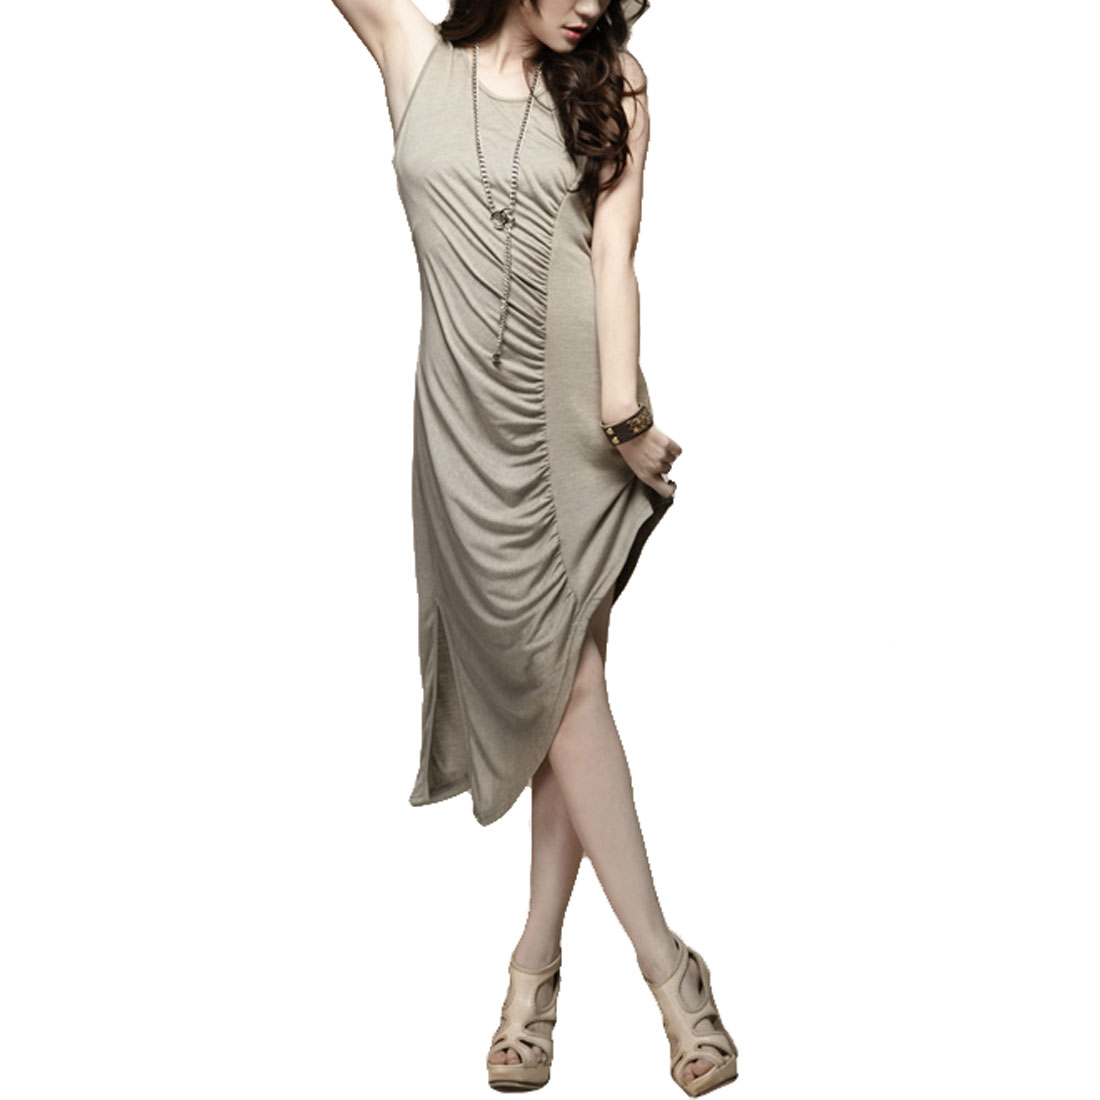 Summer Sleevesless Khaki Ruffled Slanting Hem Dress XS for Women